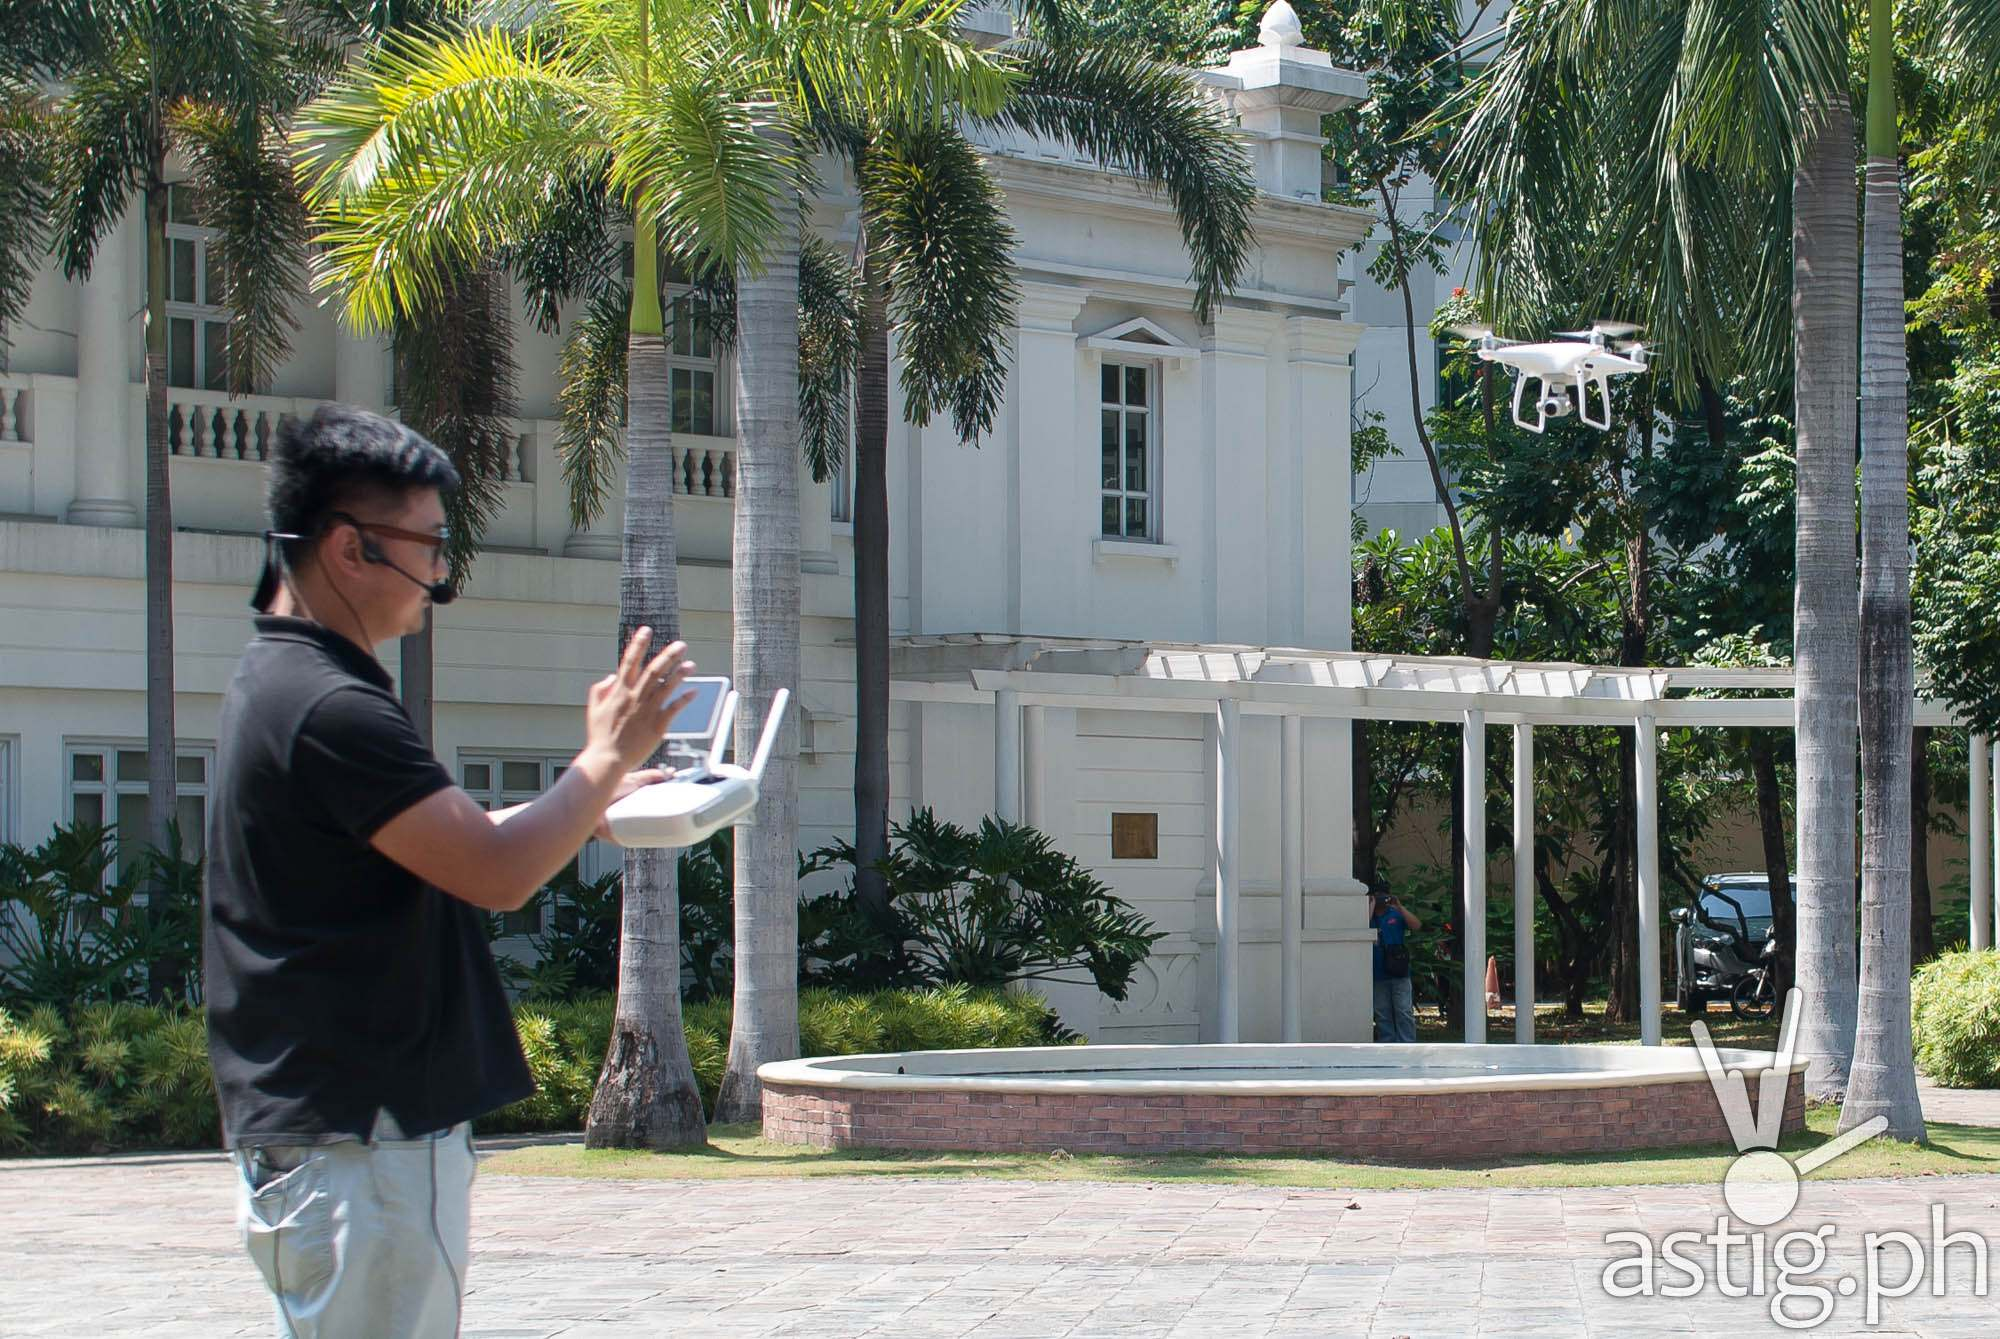 Demonstration of the DJI Phantom aerial drone